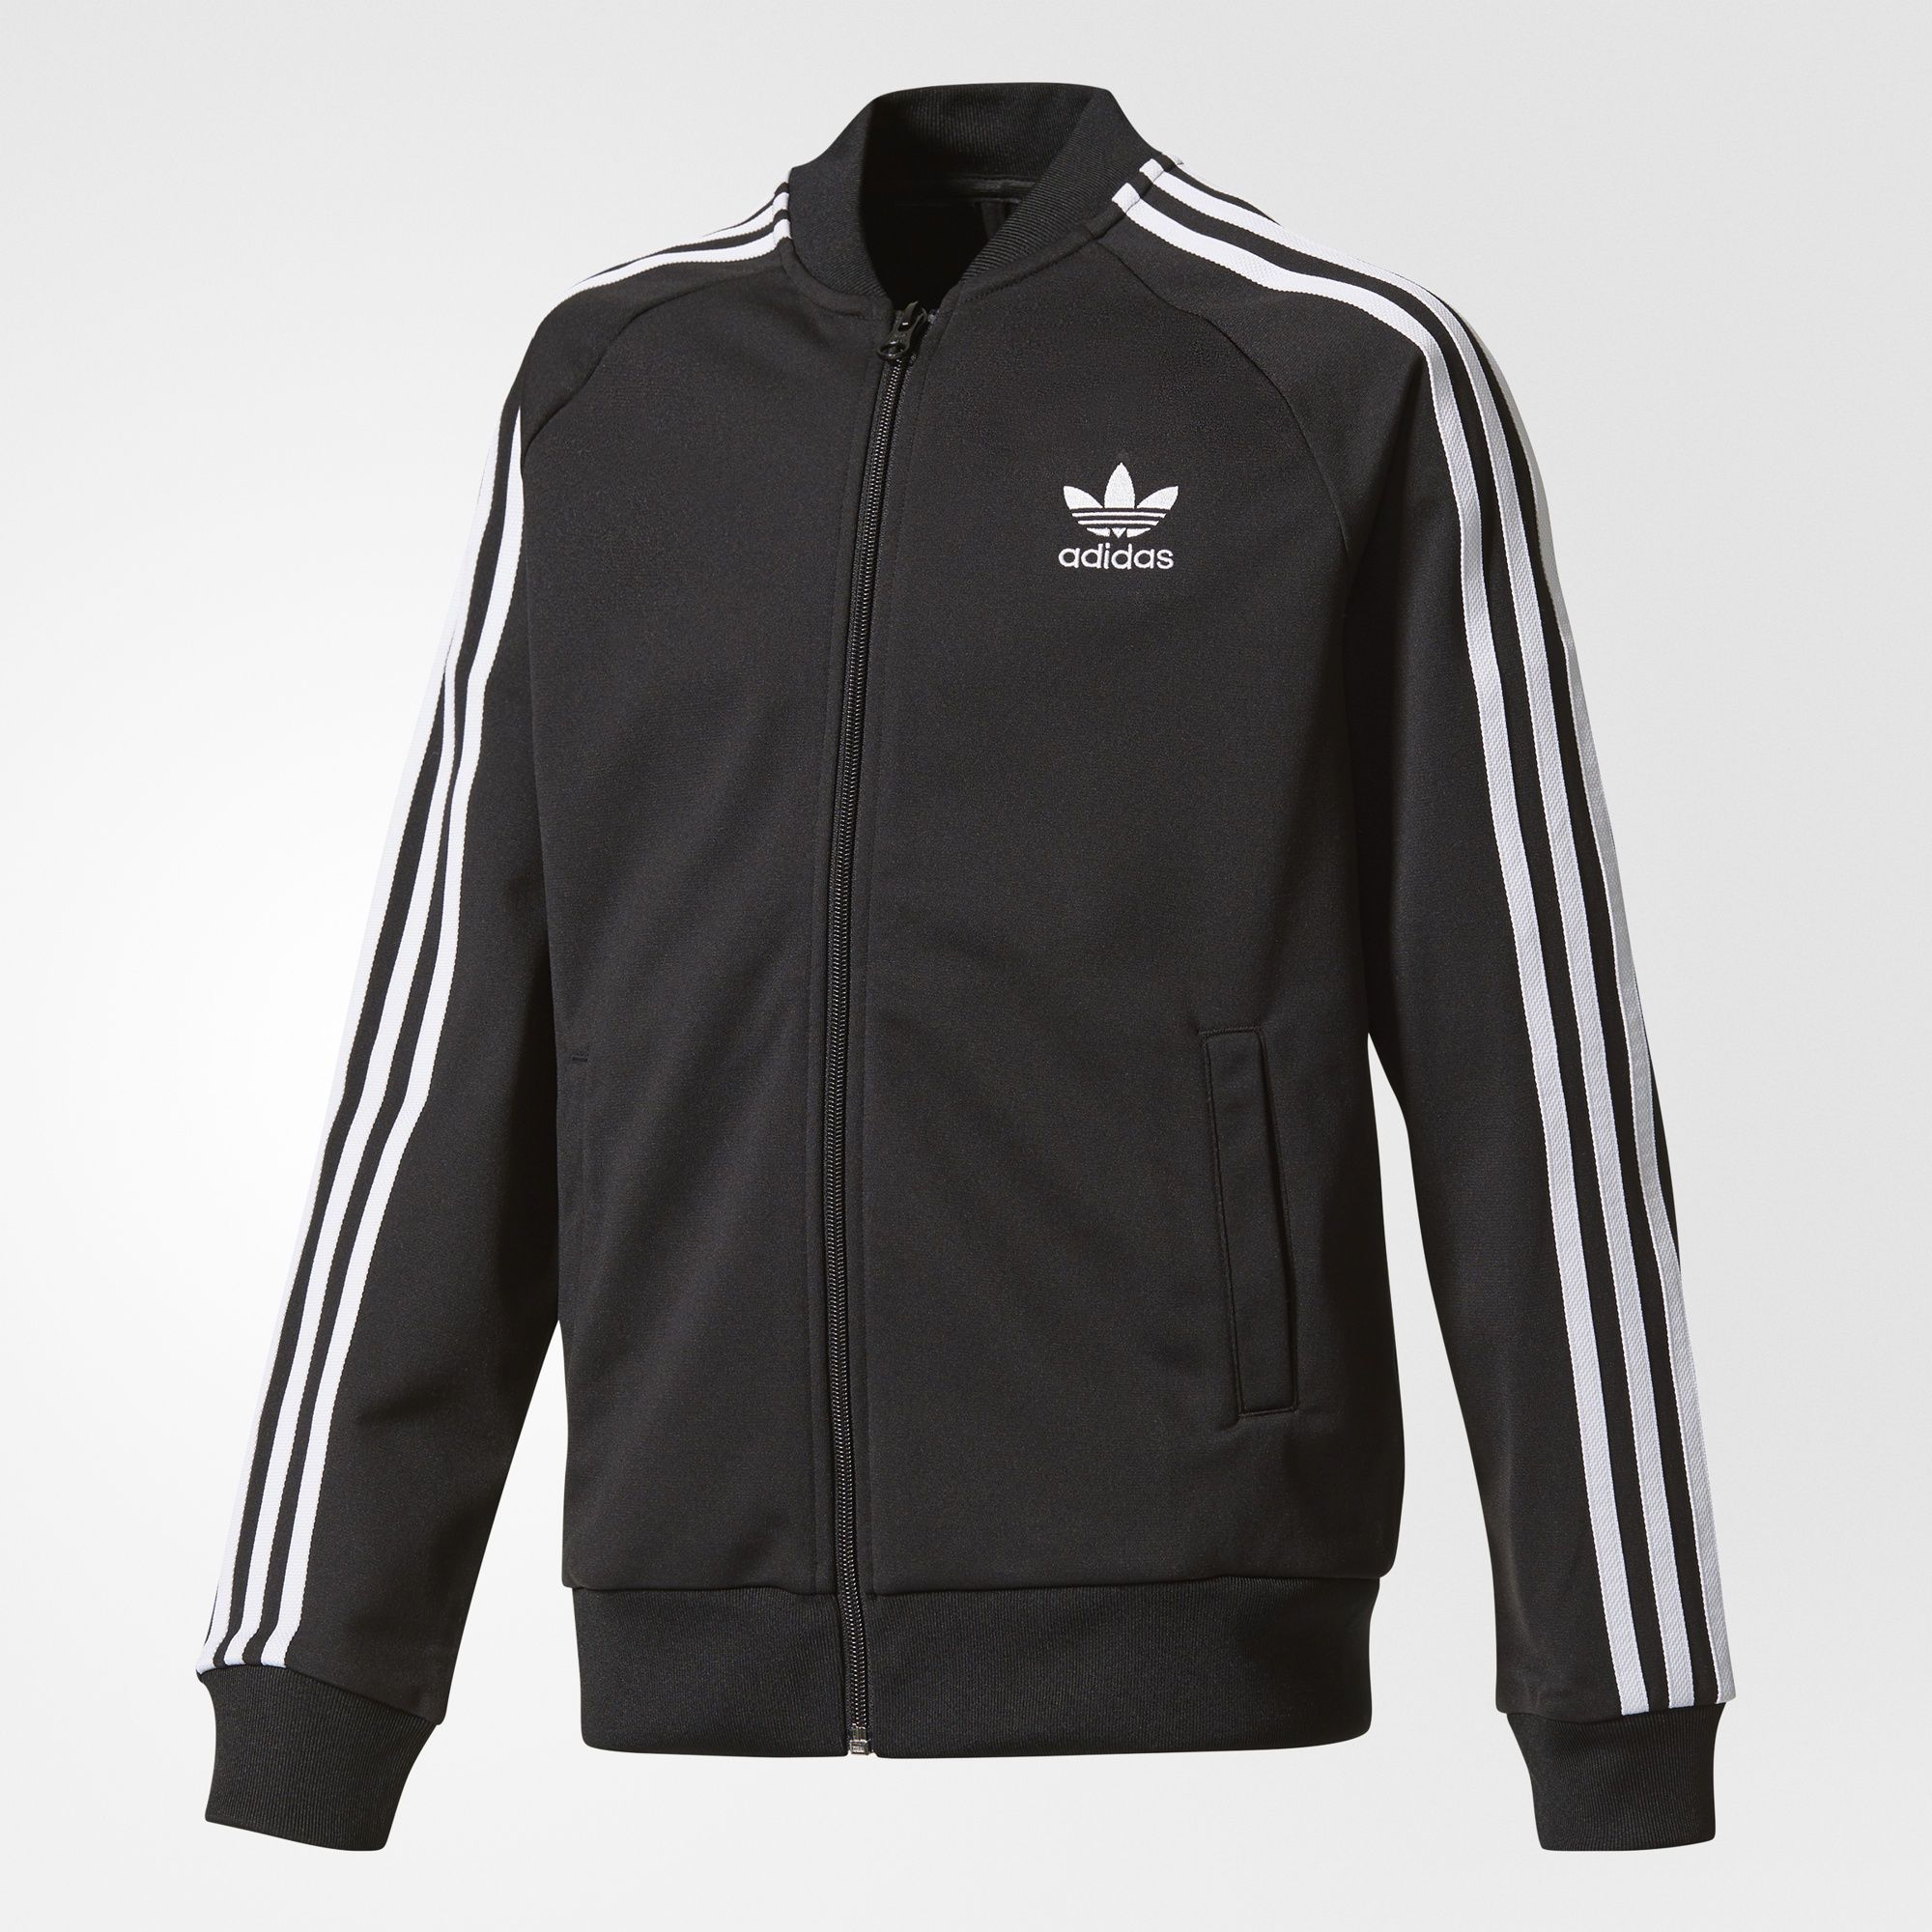 This junior boys' track jacket delivers the timeless adidas